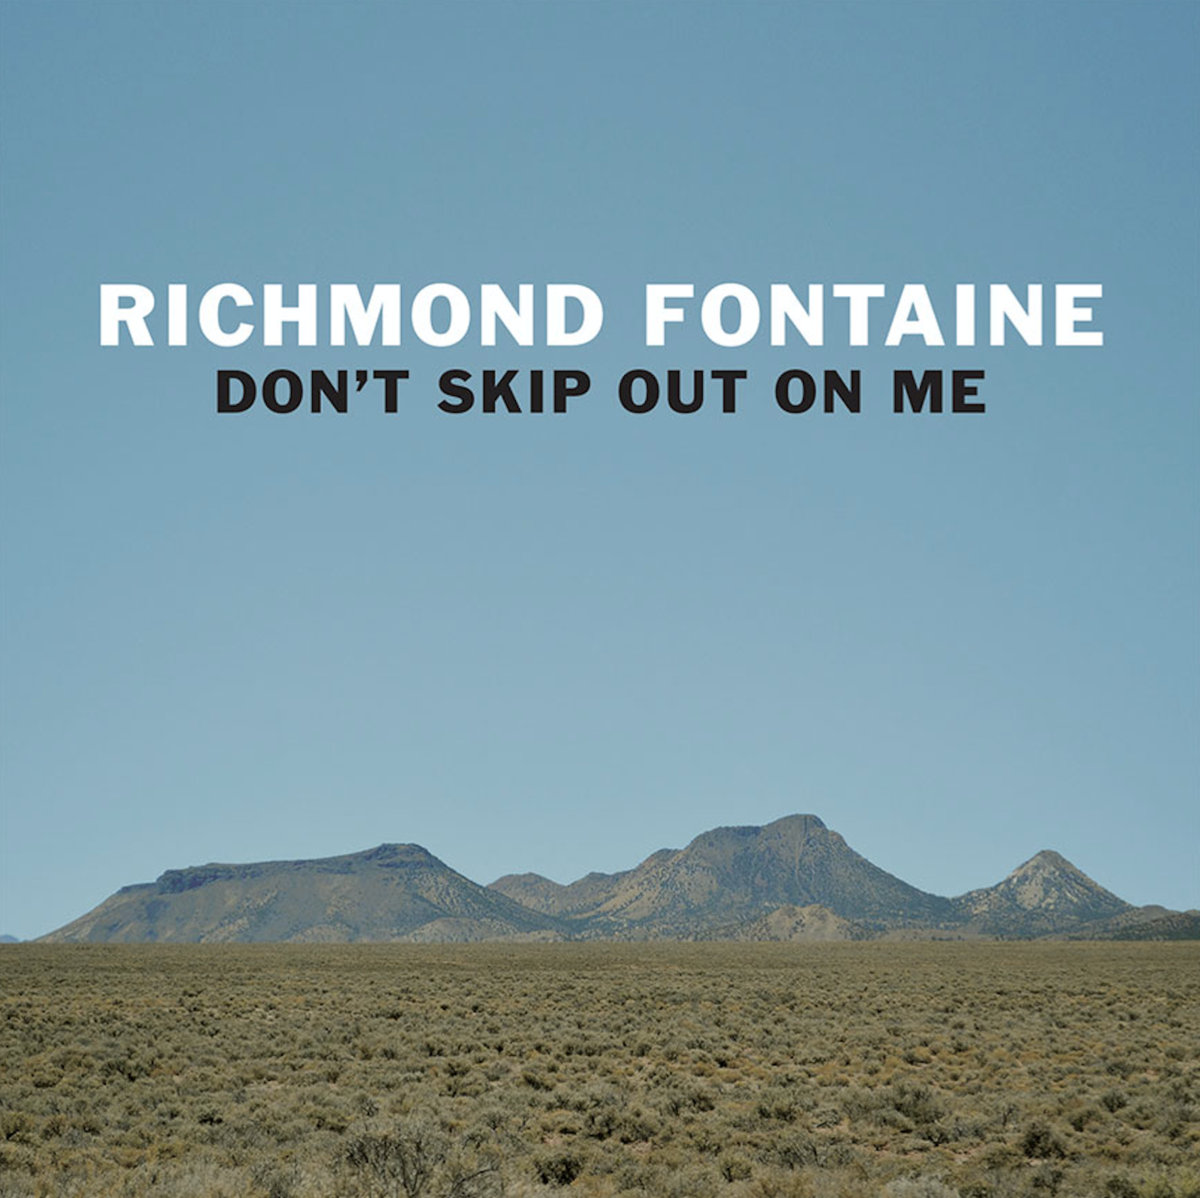 Don't Skip Out On Me by Richmond Fontaine | Album Review